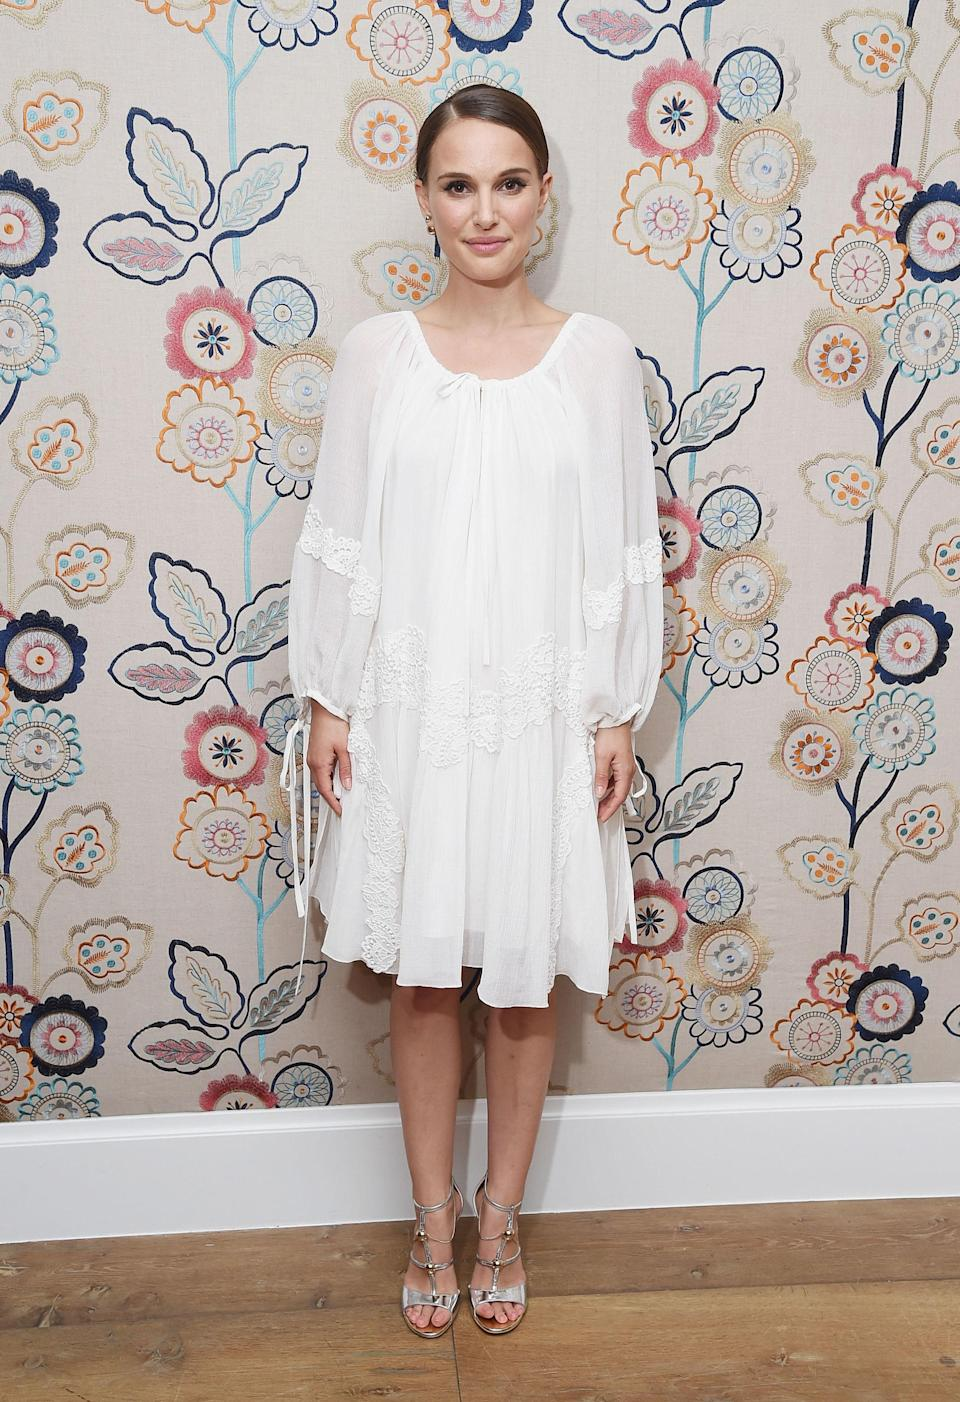 <p>Oscar-winning actress and Harvard University graduate, Natalie Portman is someone with talent to burn who also happens to be one of the great beauties of the modern celebrity era. Oh, and she's also a promising director now. Expect her to cure cancer around 2035.</p>